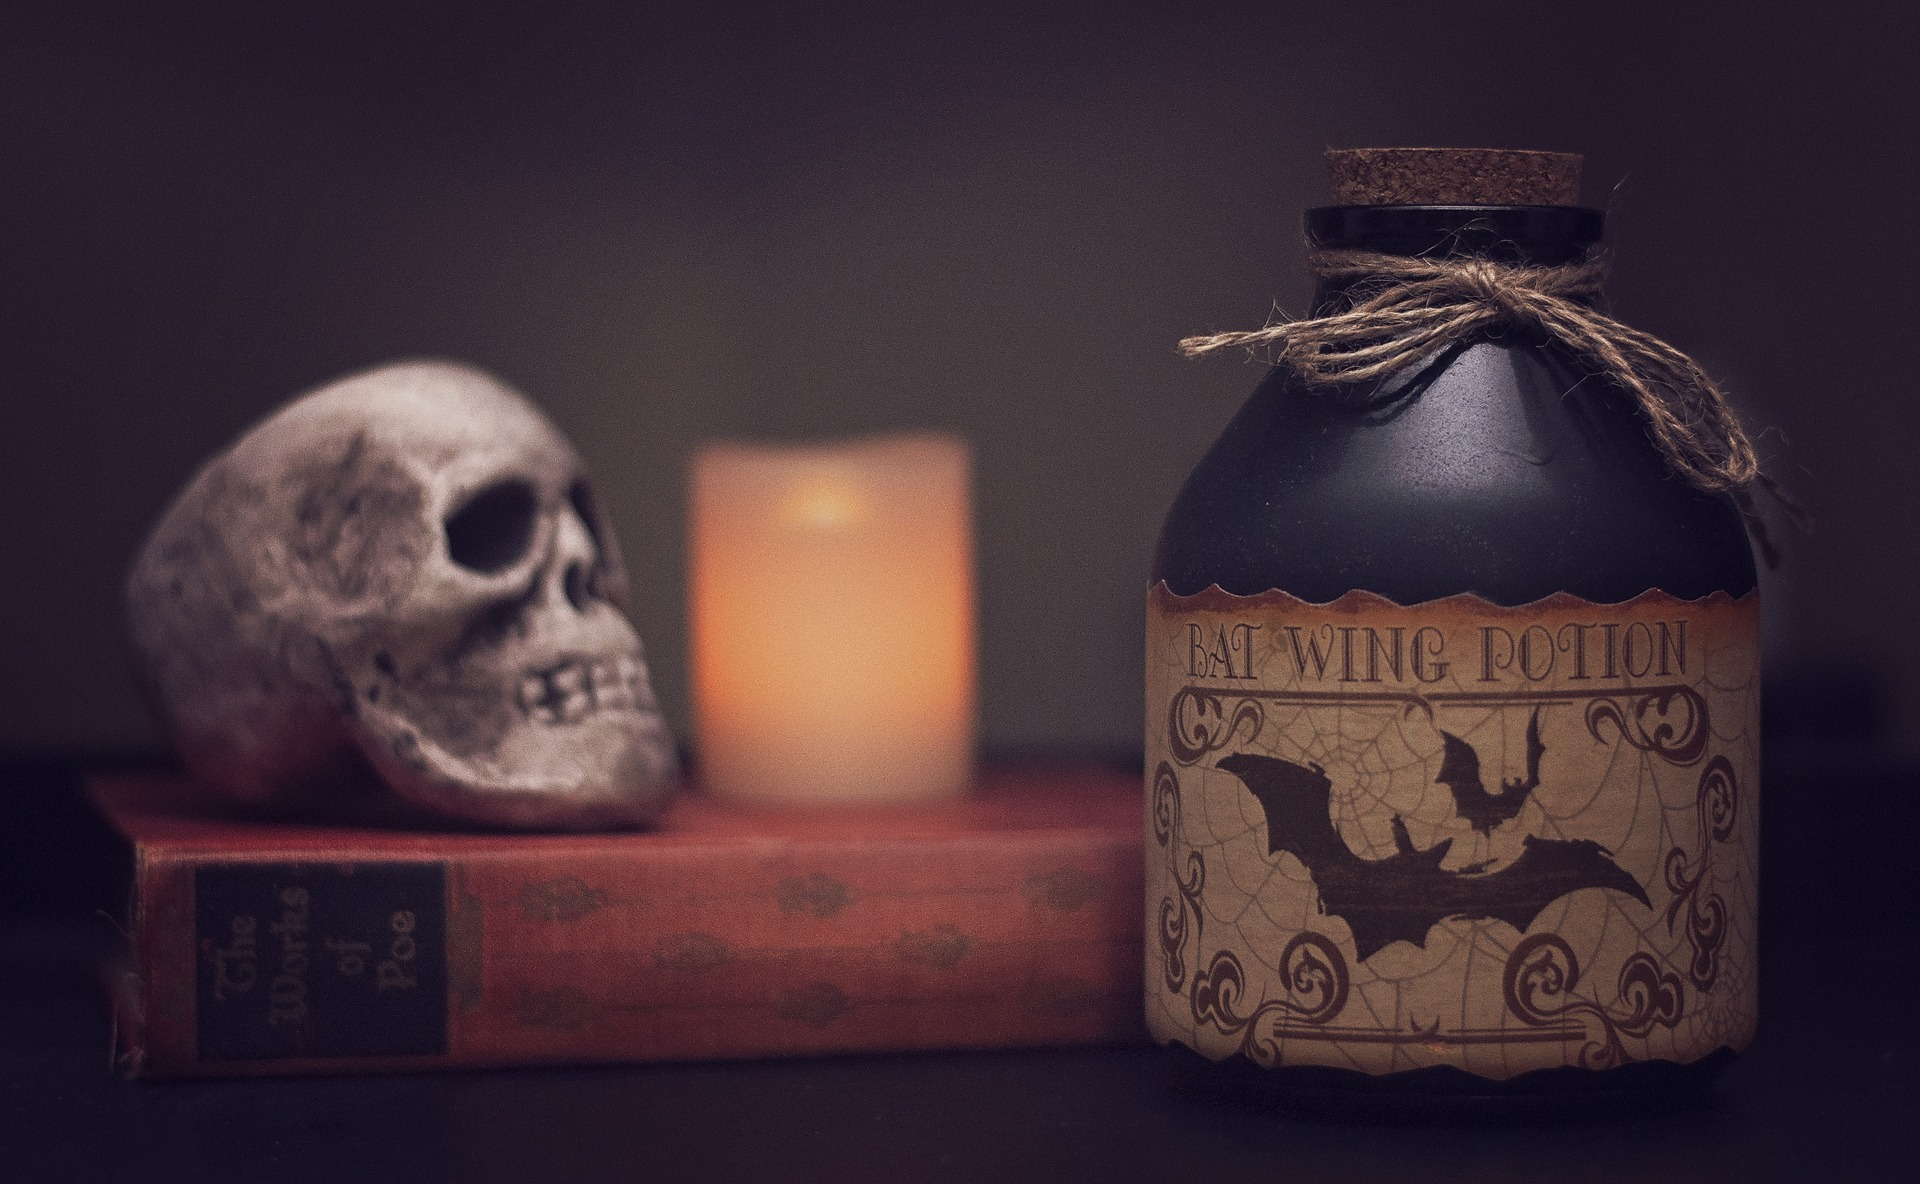 Make Your Home Feel Like A Spooky Getaway With These Halloween Decorating Tips